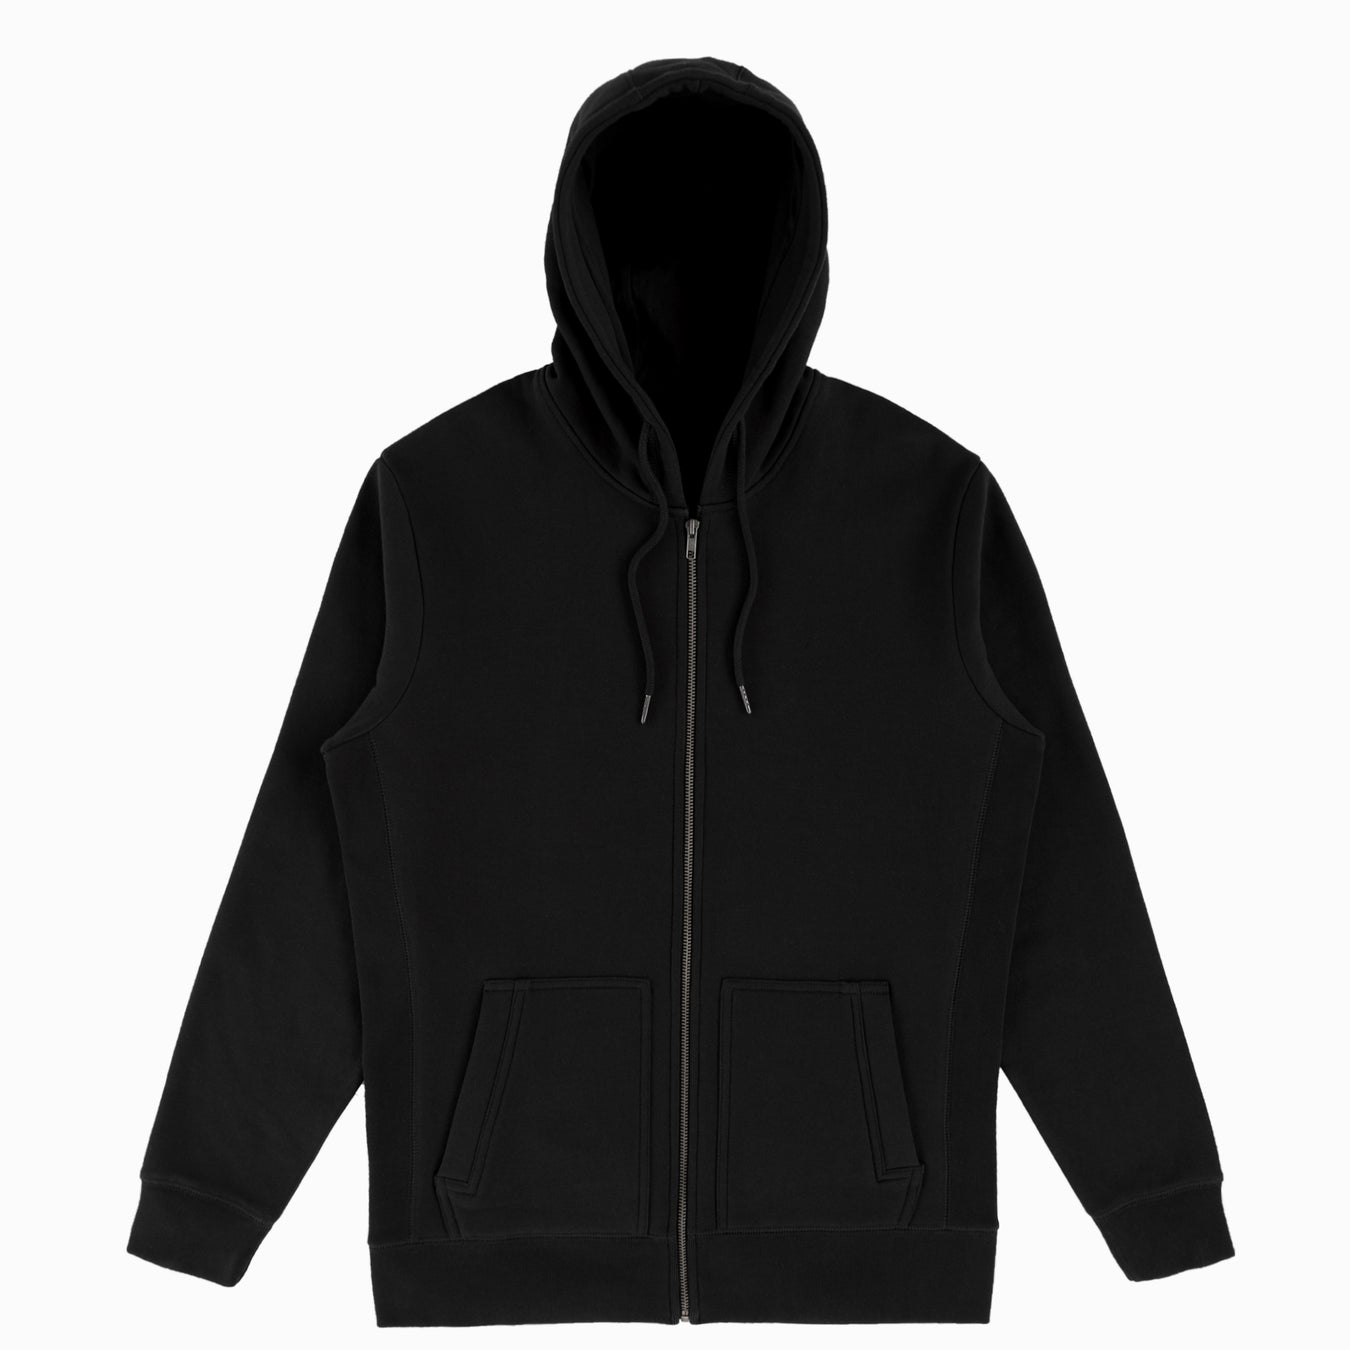 Bulk - Organic Cotton Zip-Up Sweatshirt